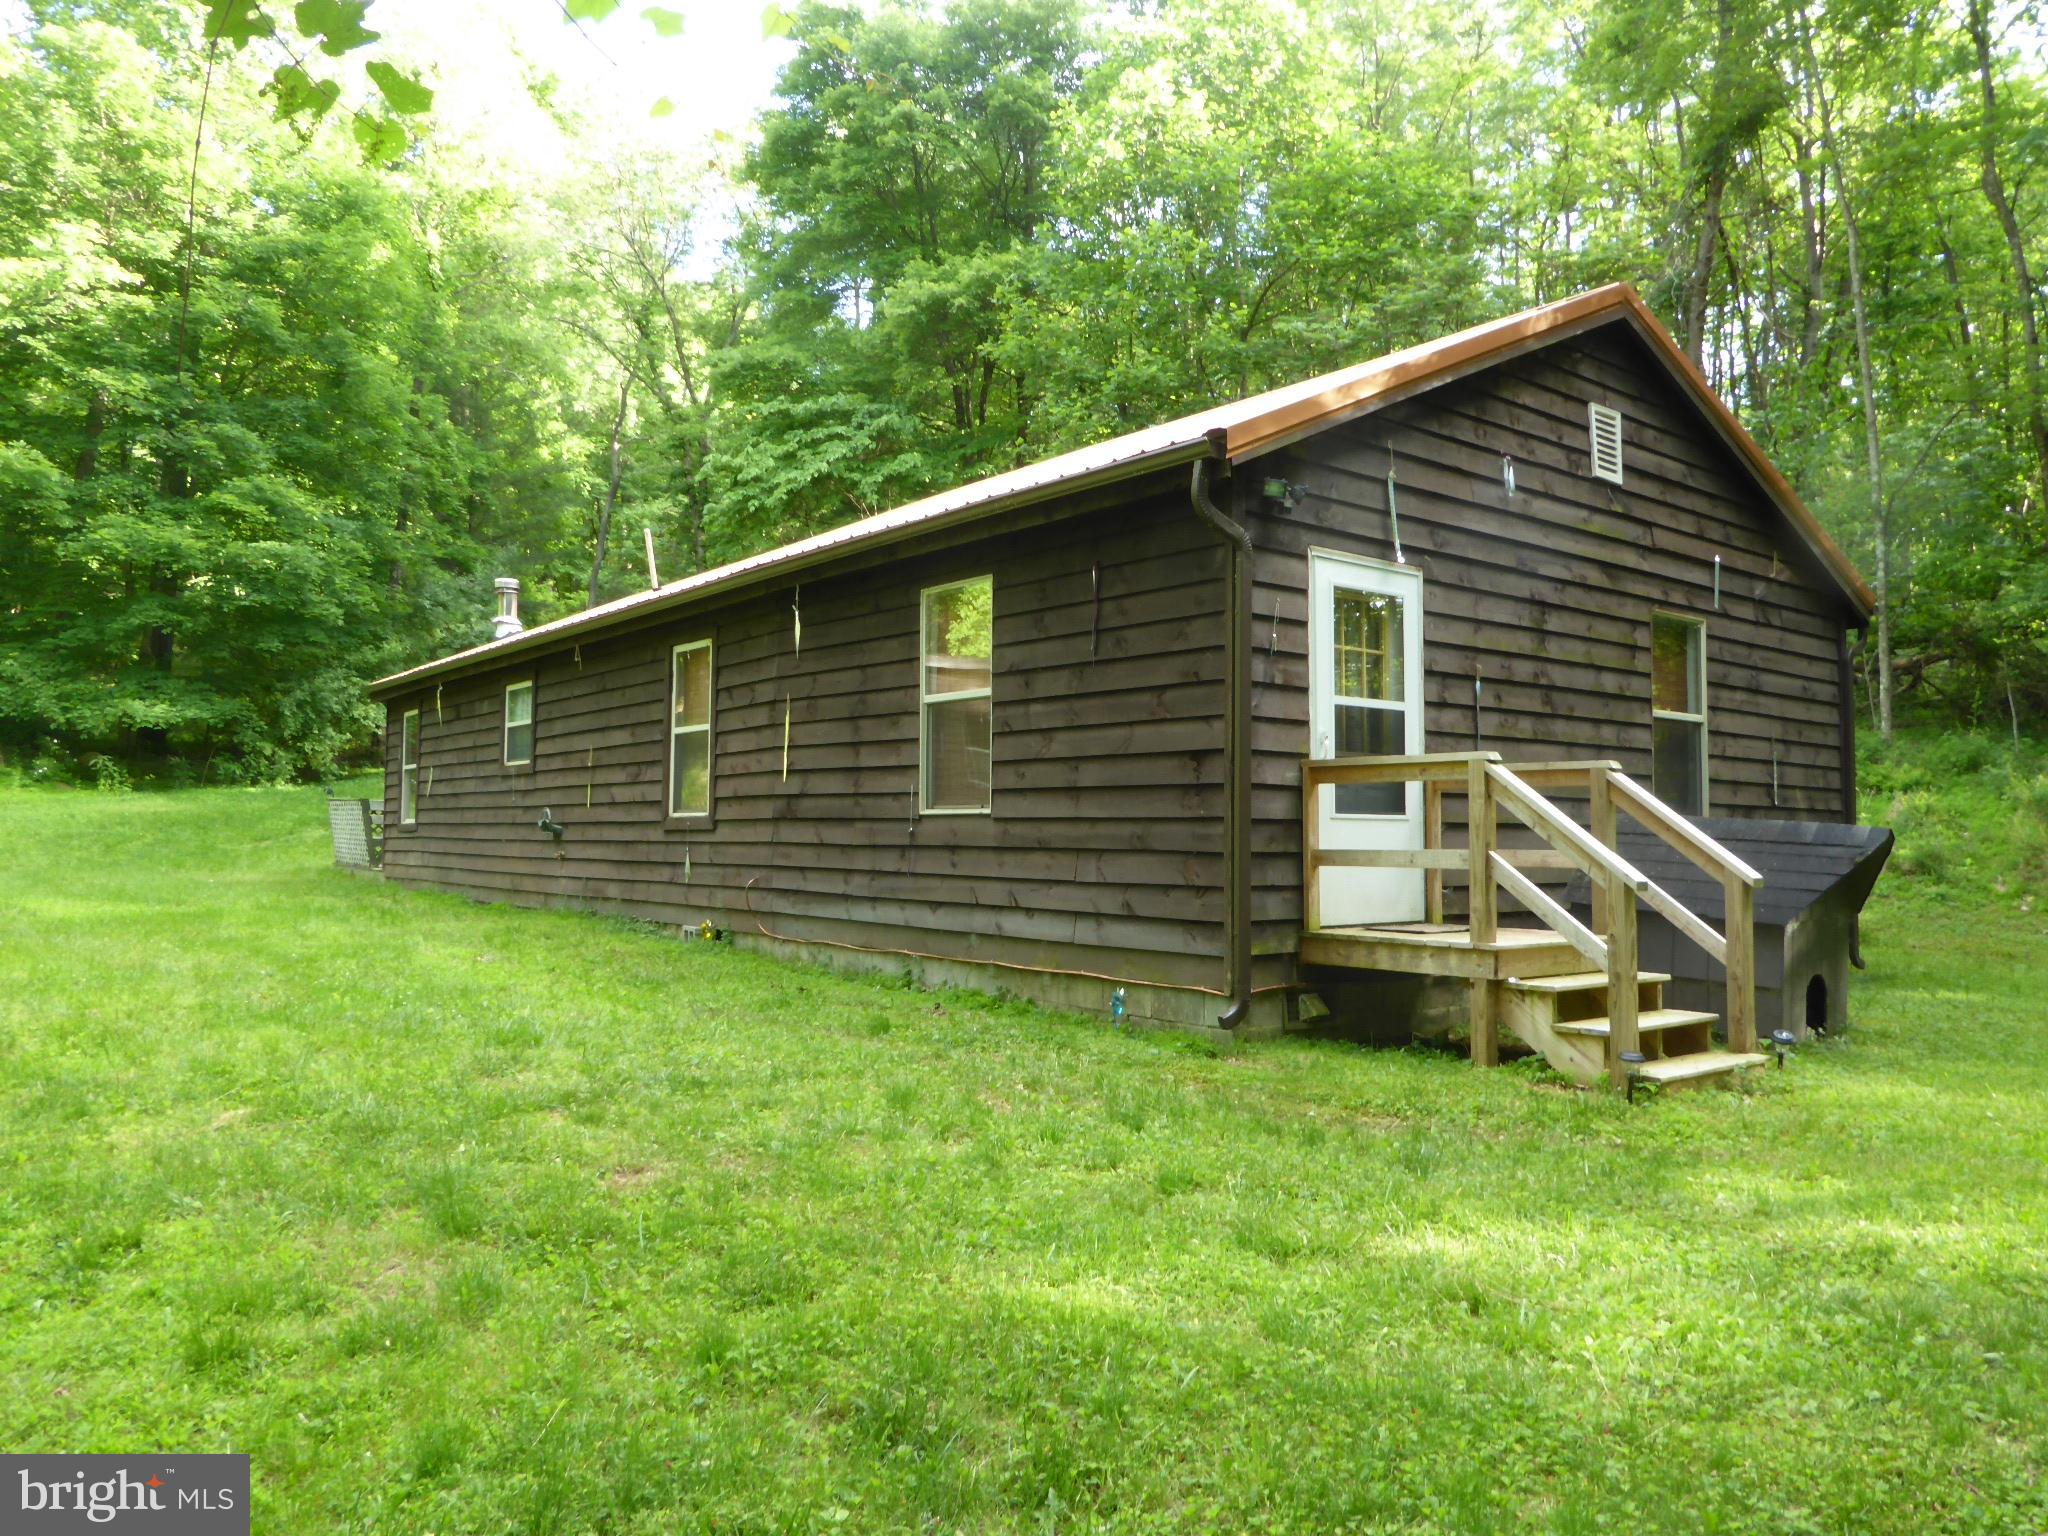 4883 THORN BOTTOM ROAD, LOST CITY, WV 26810